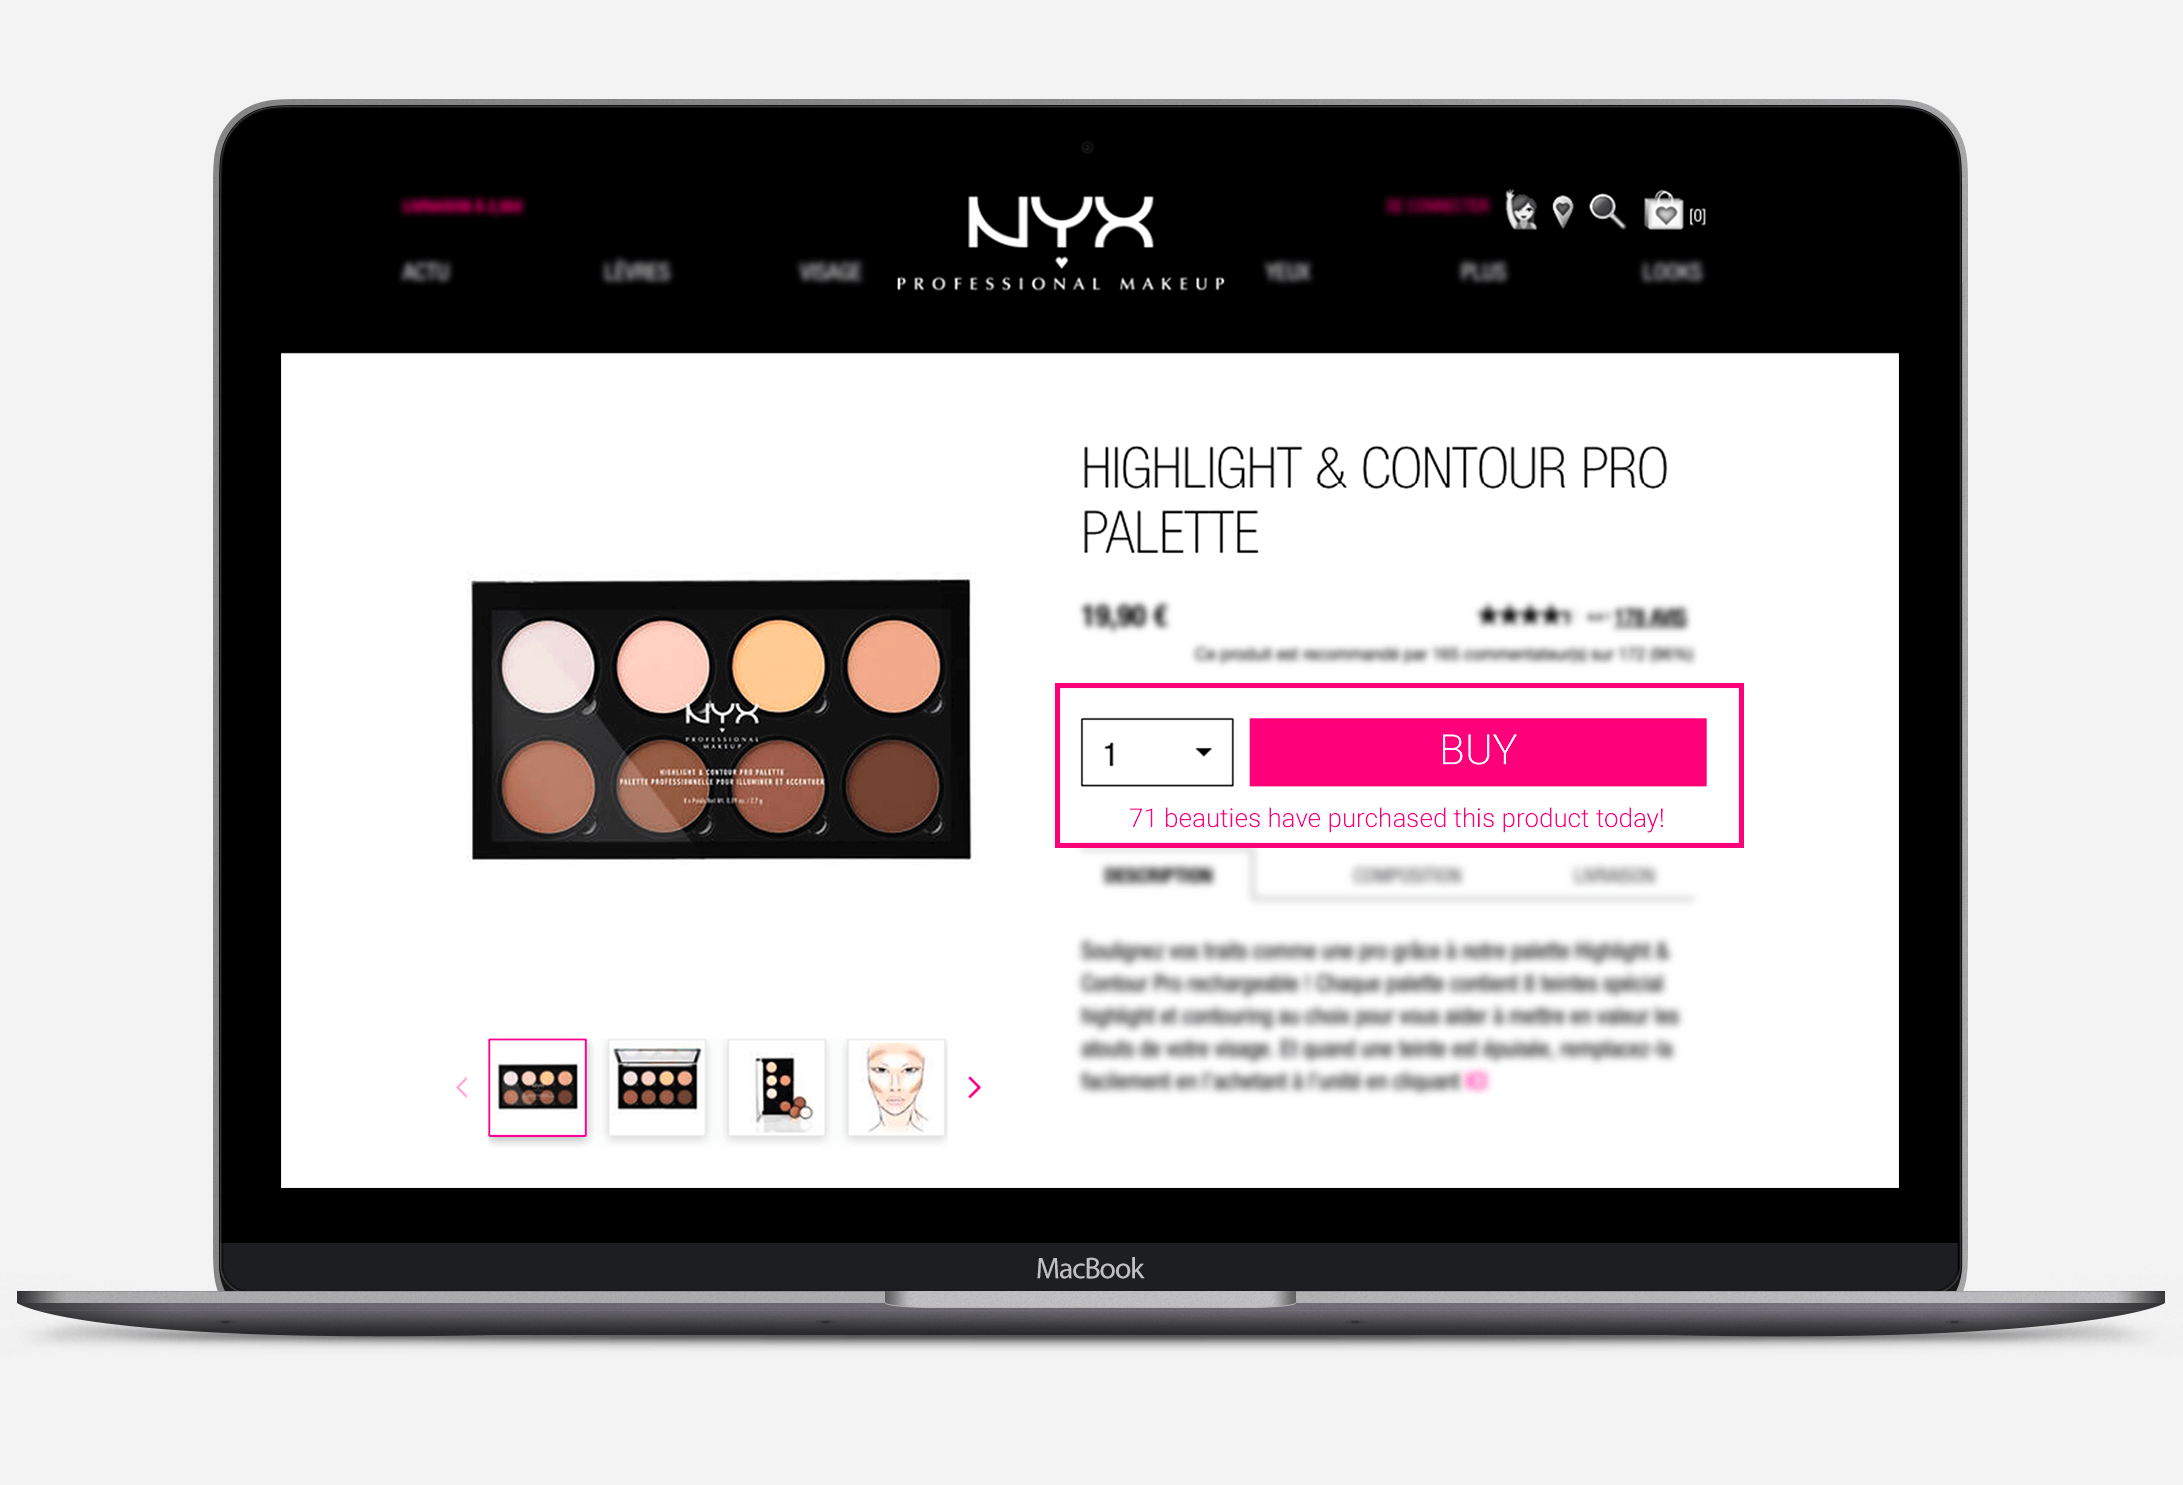 NYX Professional make up social proof messaging